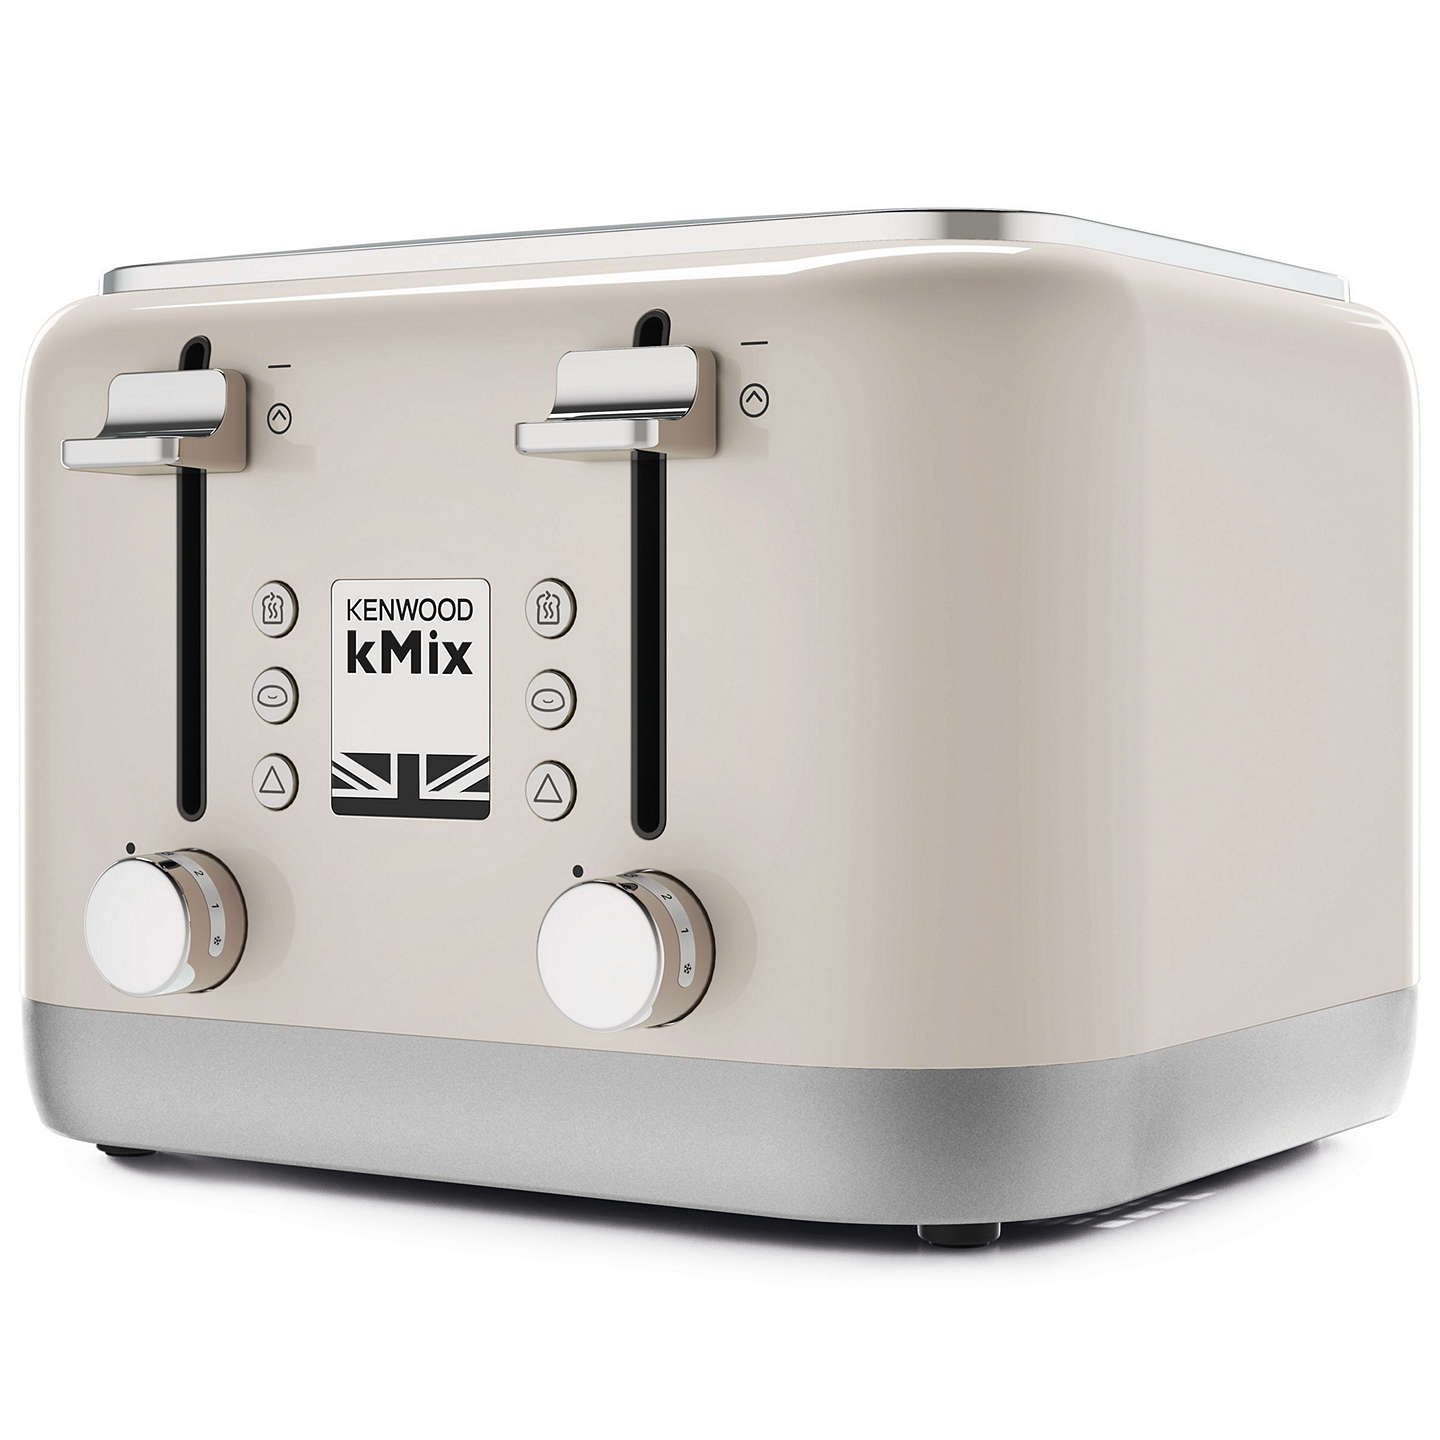 kenwood kmix tfx750 4 slice toaster at john lewis. Black Bedroom Furniture Sets. Home Design Ideas